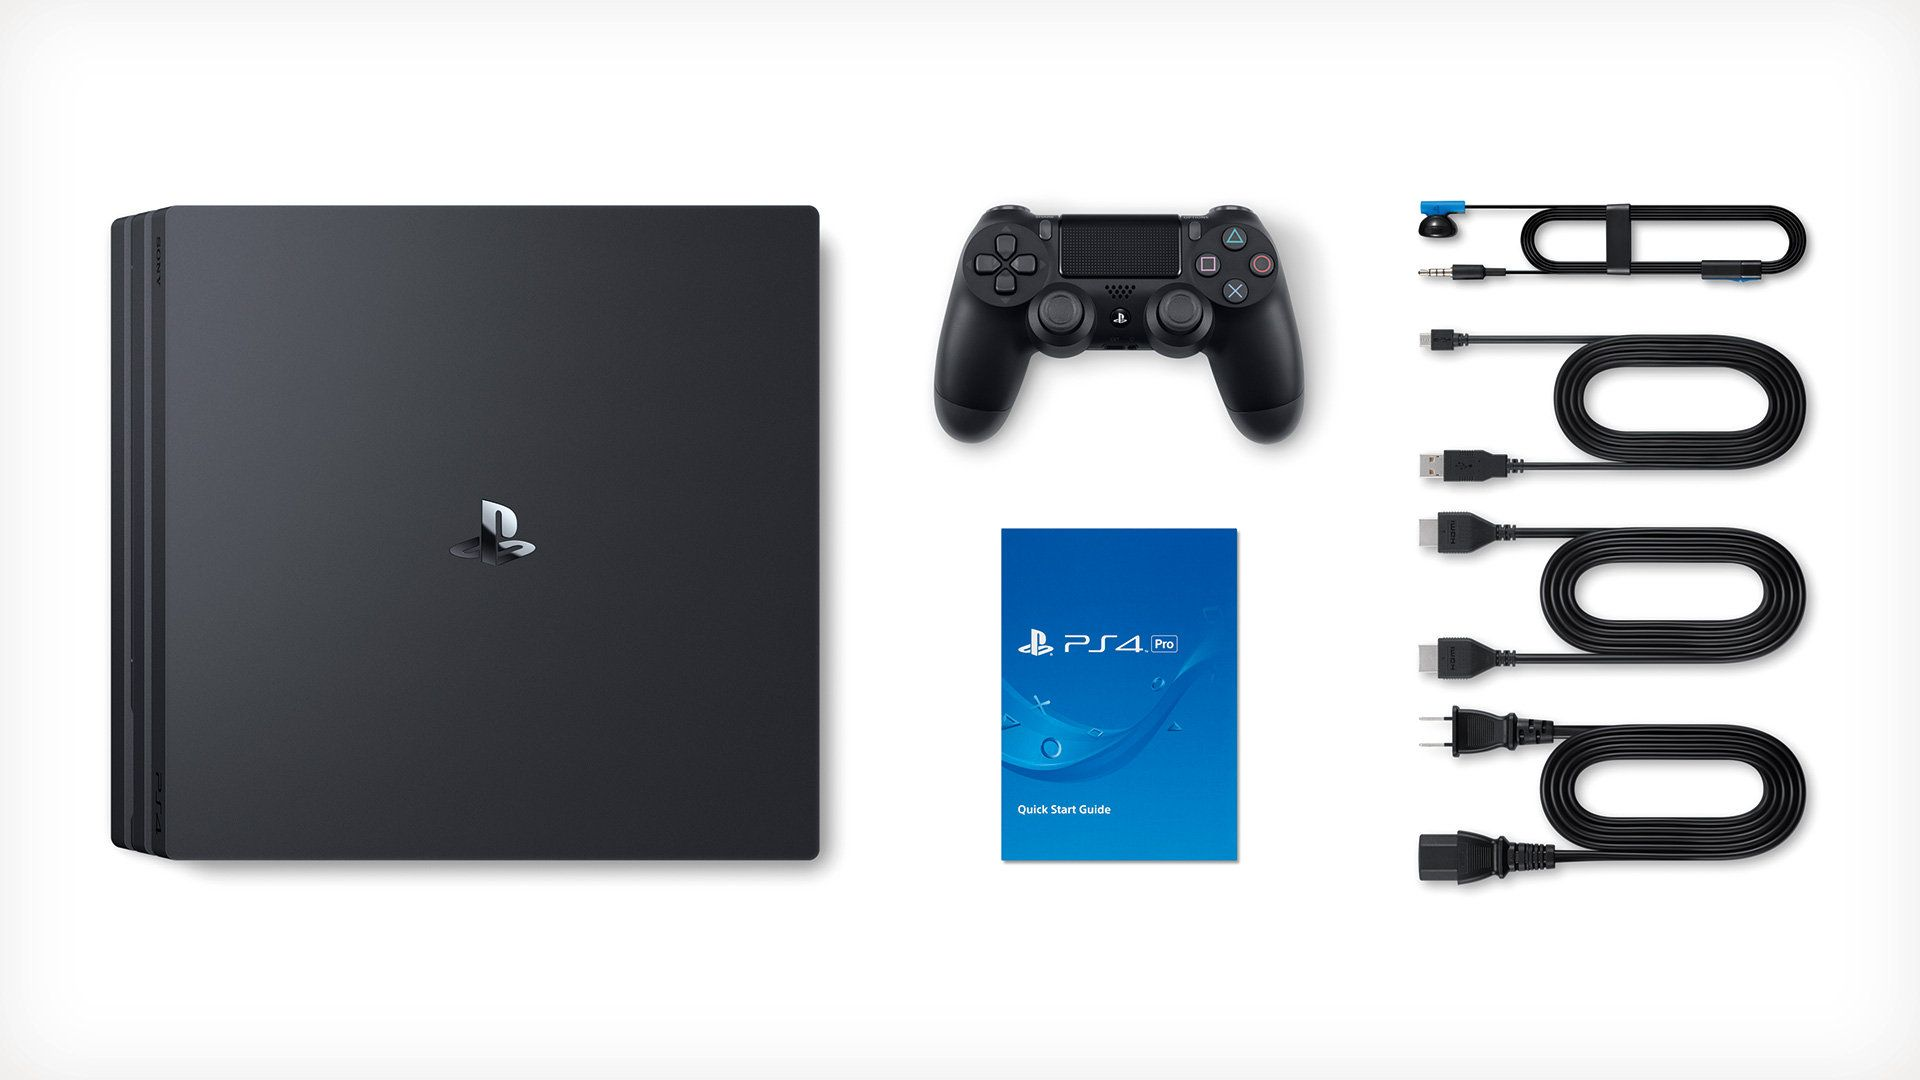 Console Playstation 4 Pro 4K - 1 Terabyte - FIfa 19 (2 Controles)